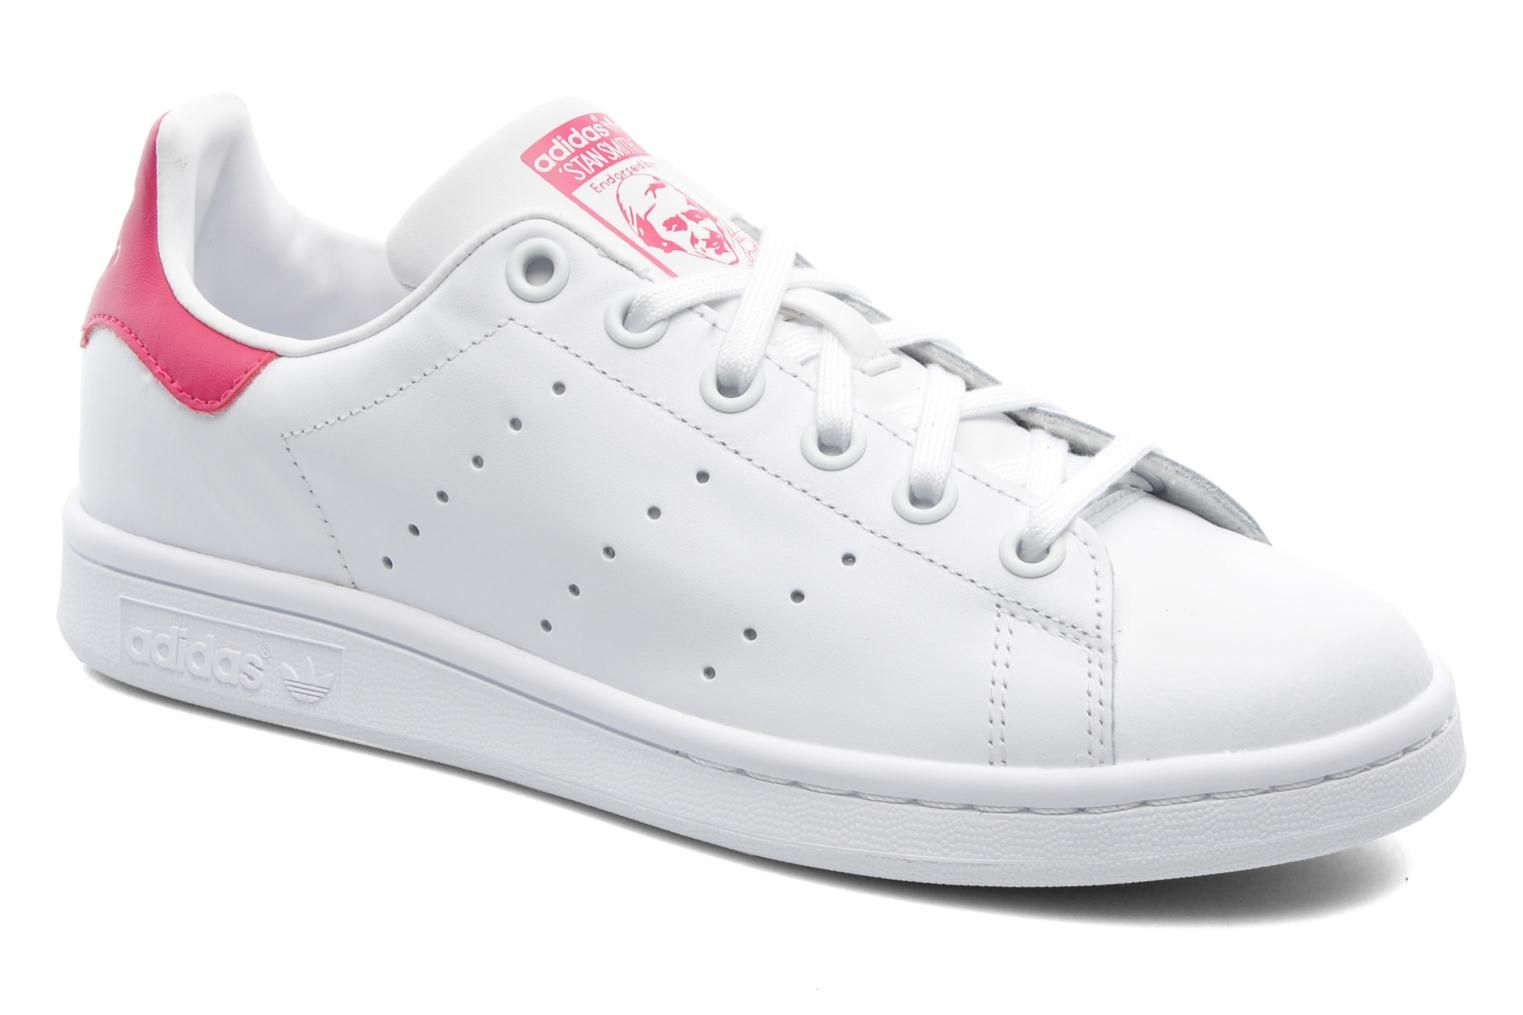 low priced 52b3e a80c2 Adidas Originals STAN SMITH J (weiß) - Sneaker bei Sarenza.de (212312)